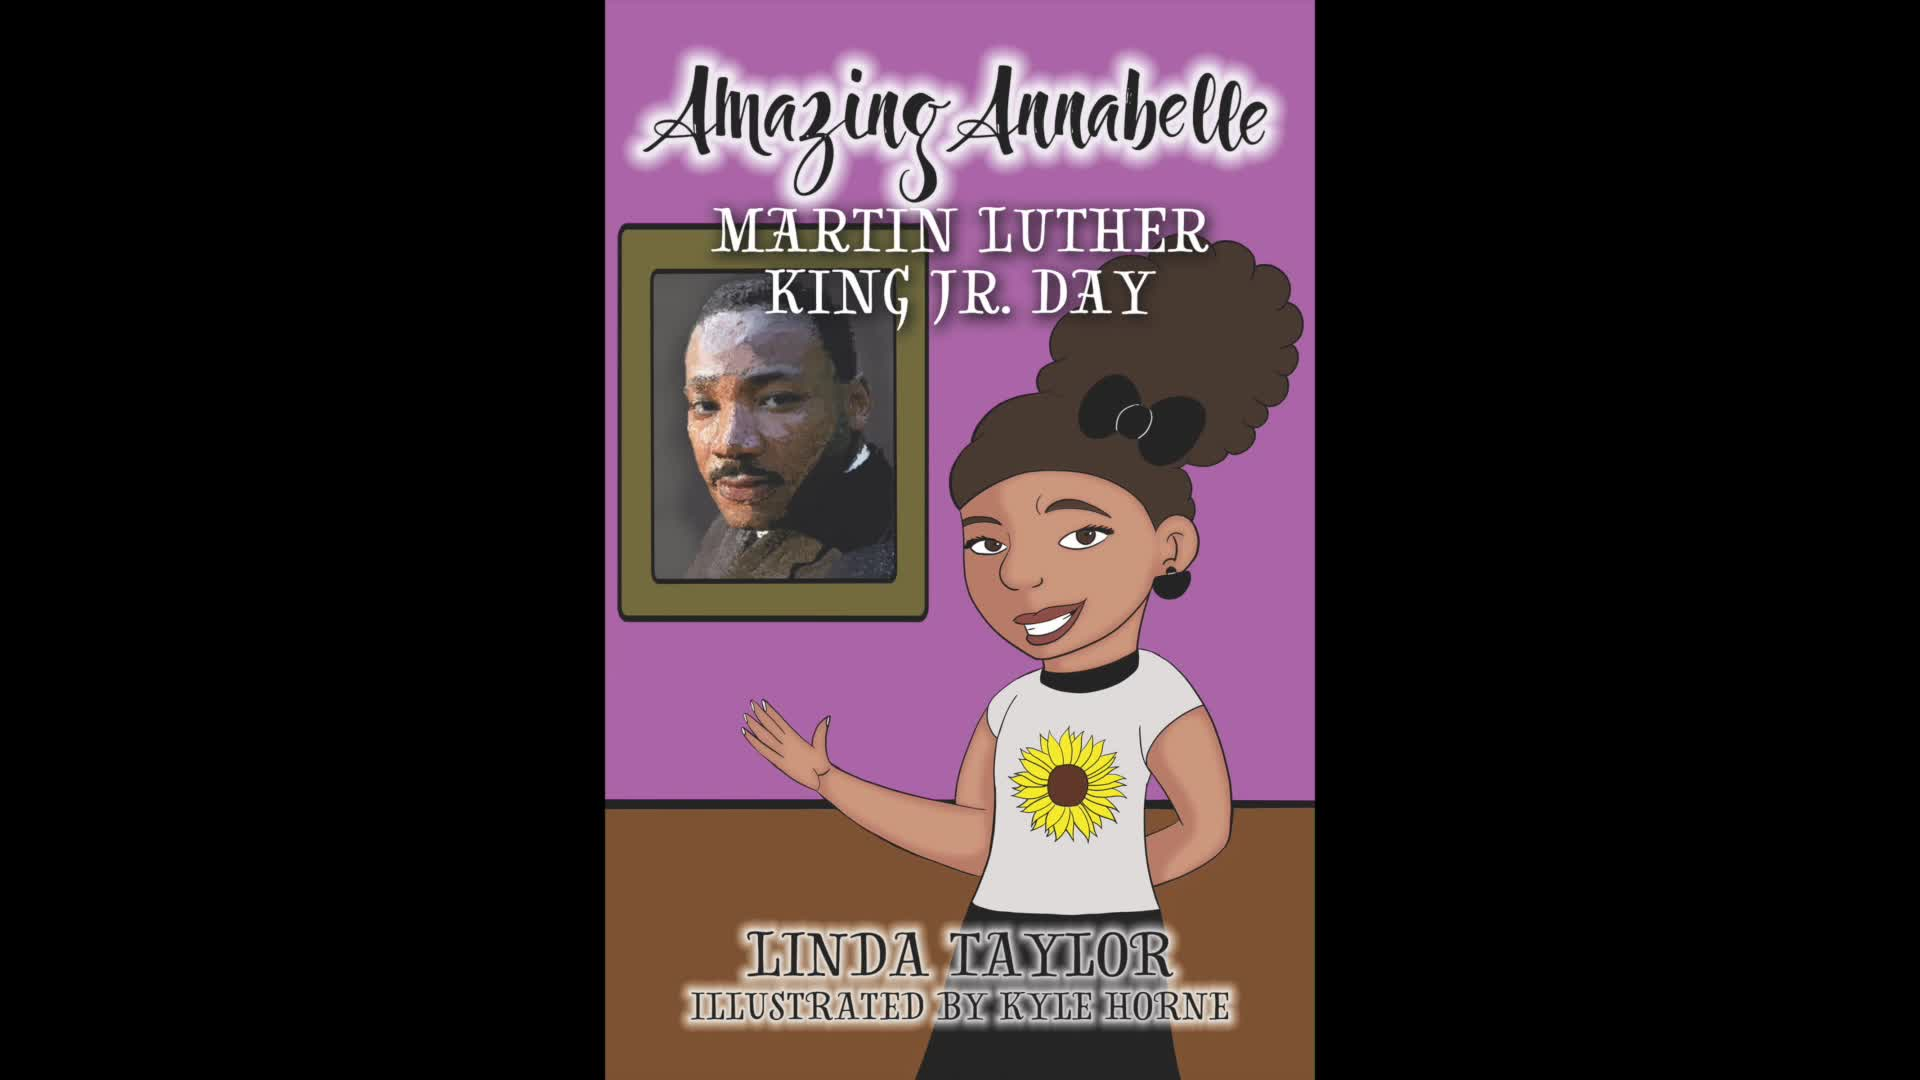 Amazing Annabelle Martin Luther King Jr Day Chapter 7